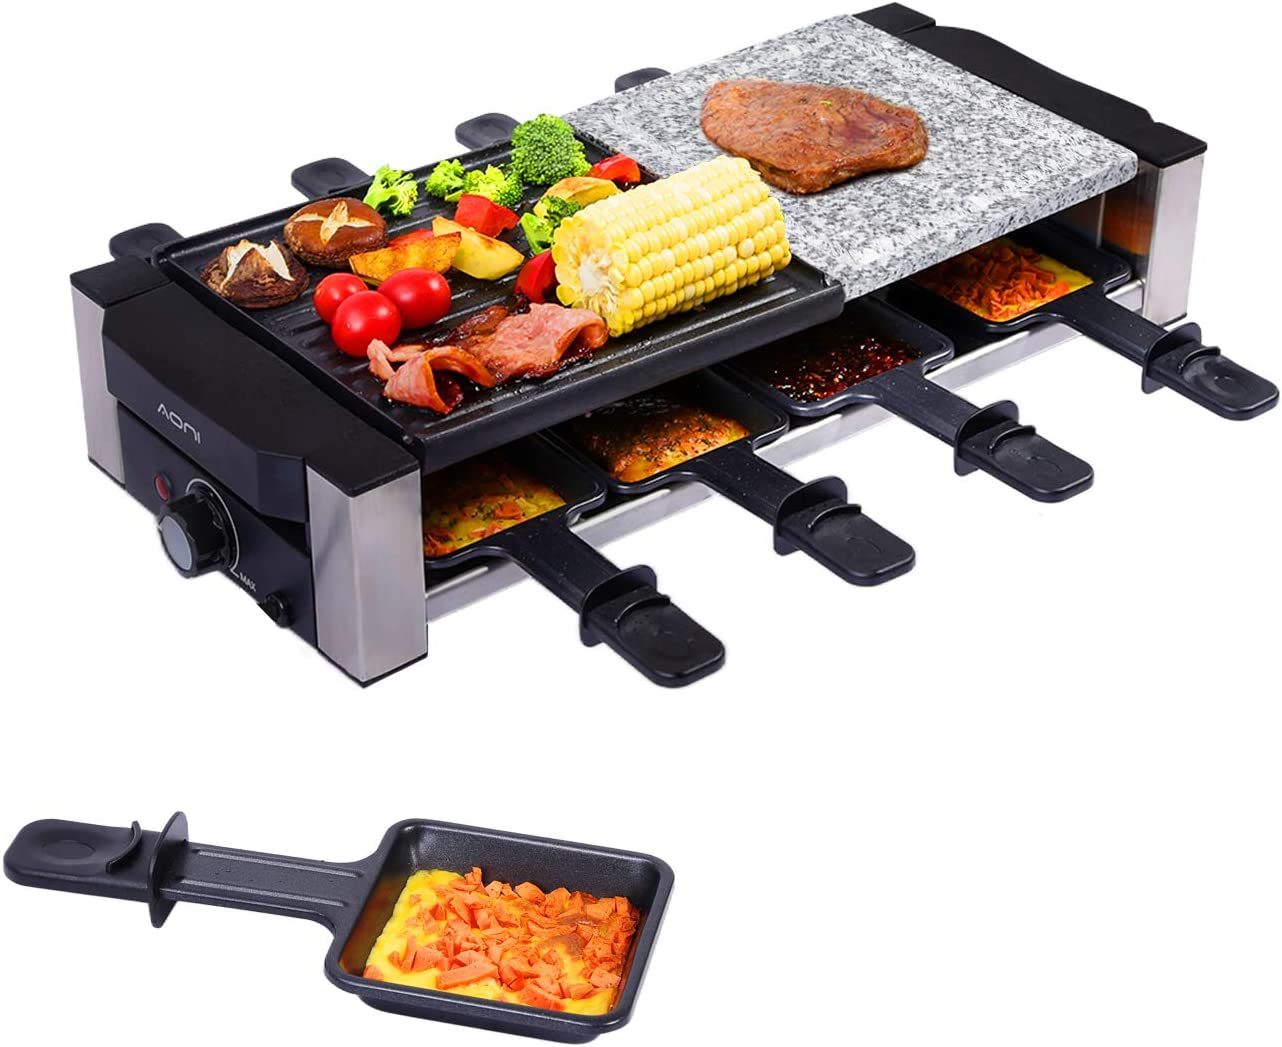 AONI Raclette Grill, Electric Indoor Grill Korean BBQ Grill, Removable 2-in-1 Non-Stick Grill Plate and Cooking Stone, Ideal for Parties with 8 Cheese Melting Pans, 1200W